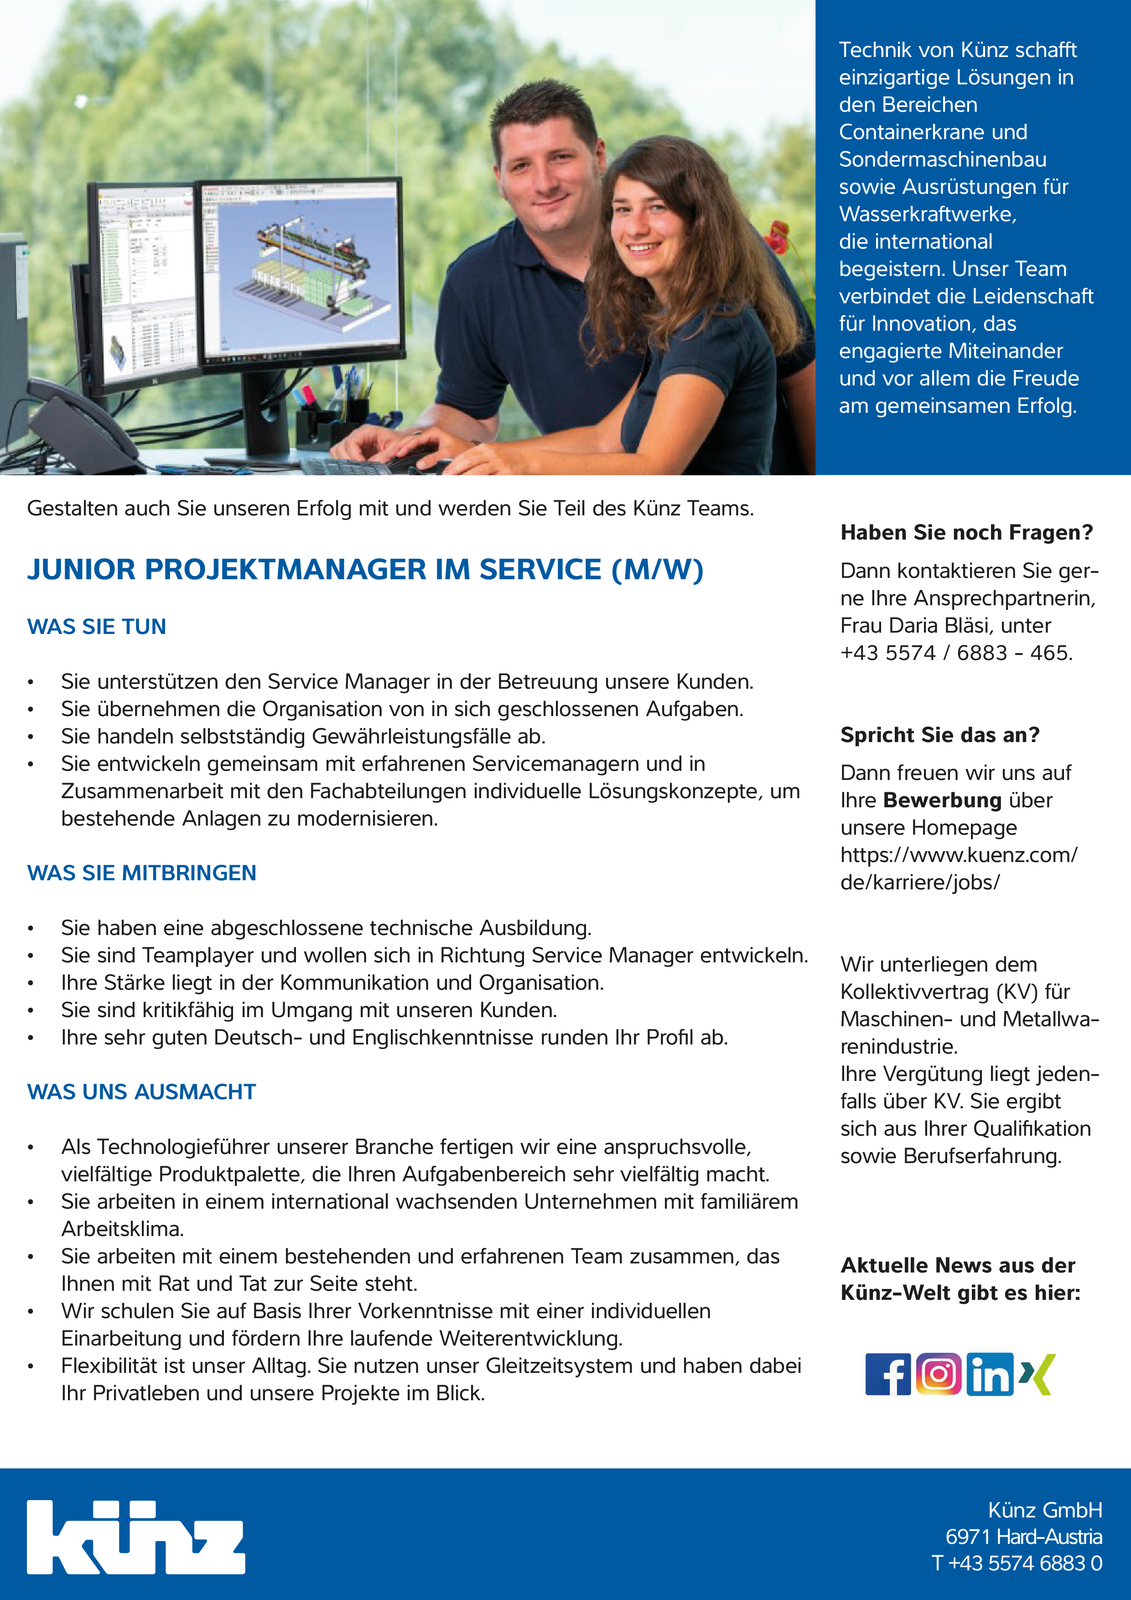 Junior Projektmanager im Service (m/w)